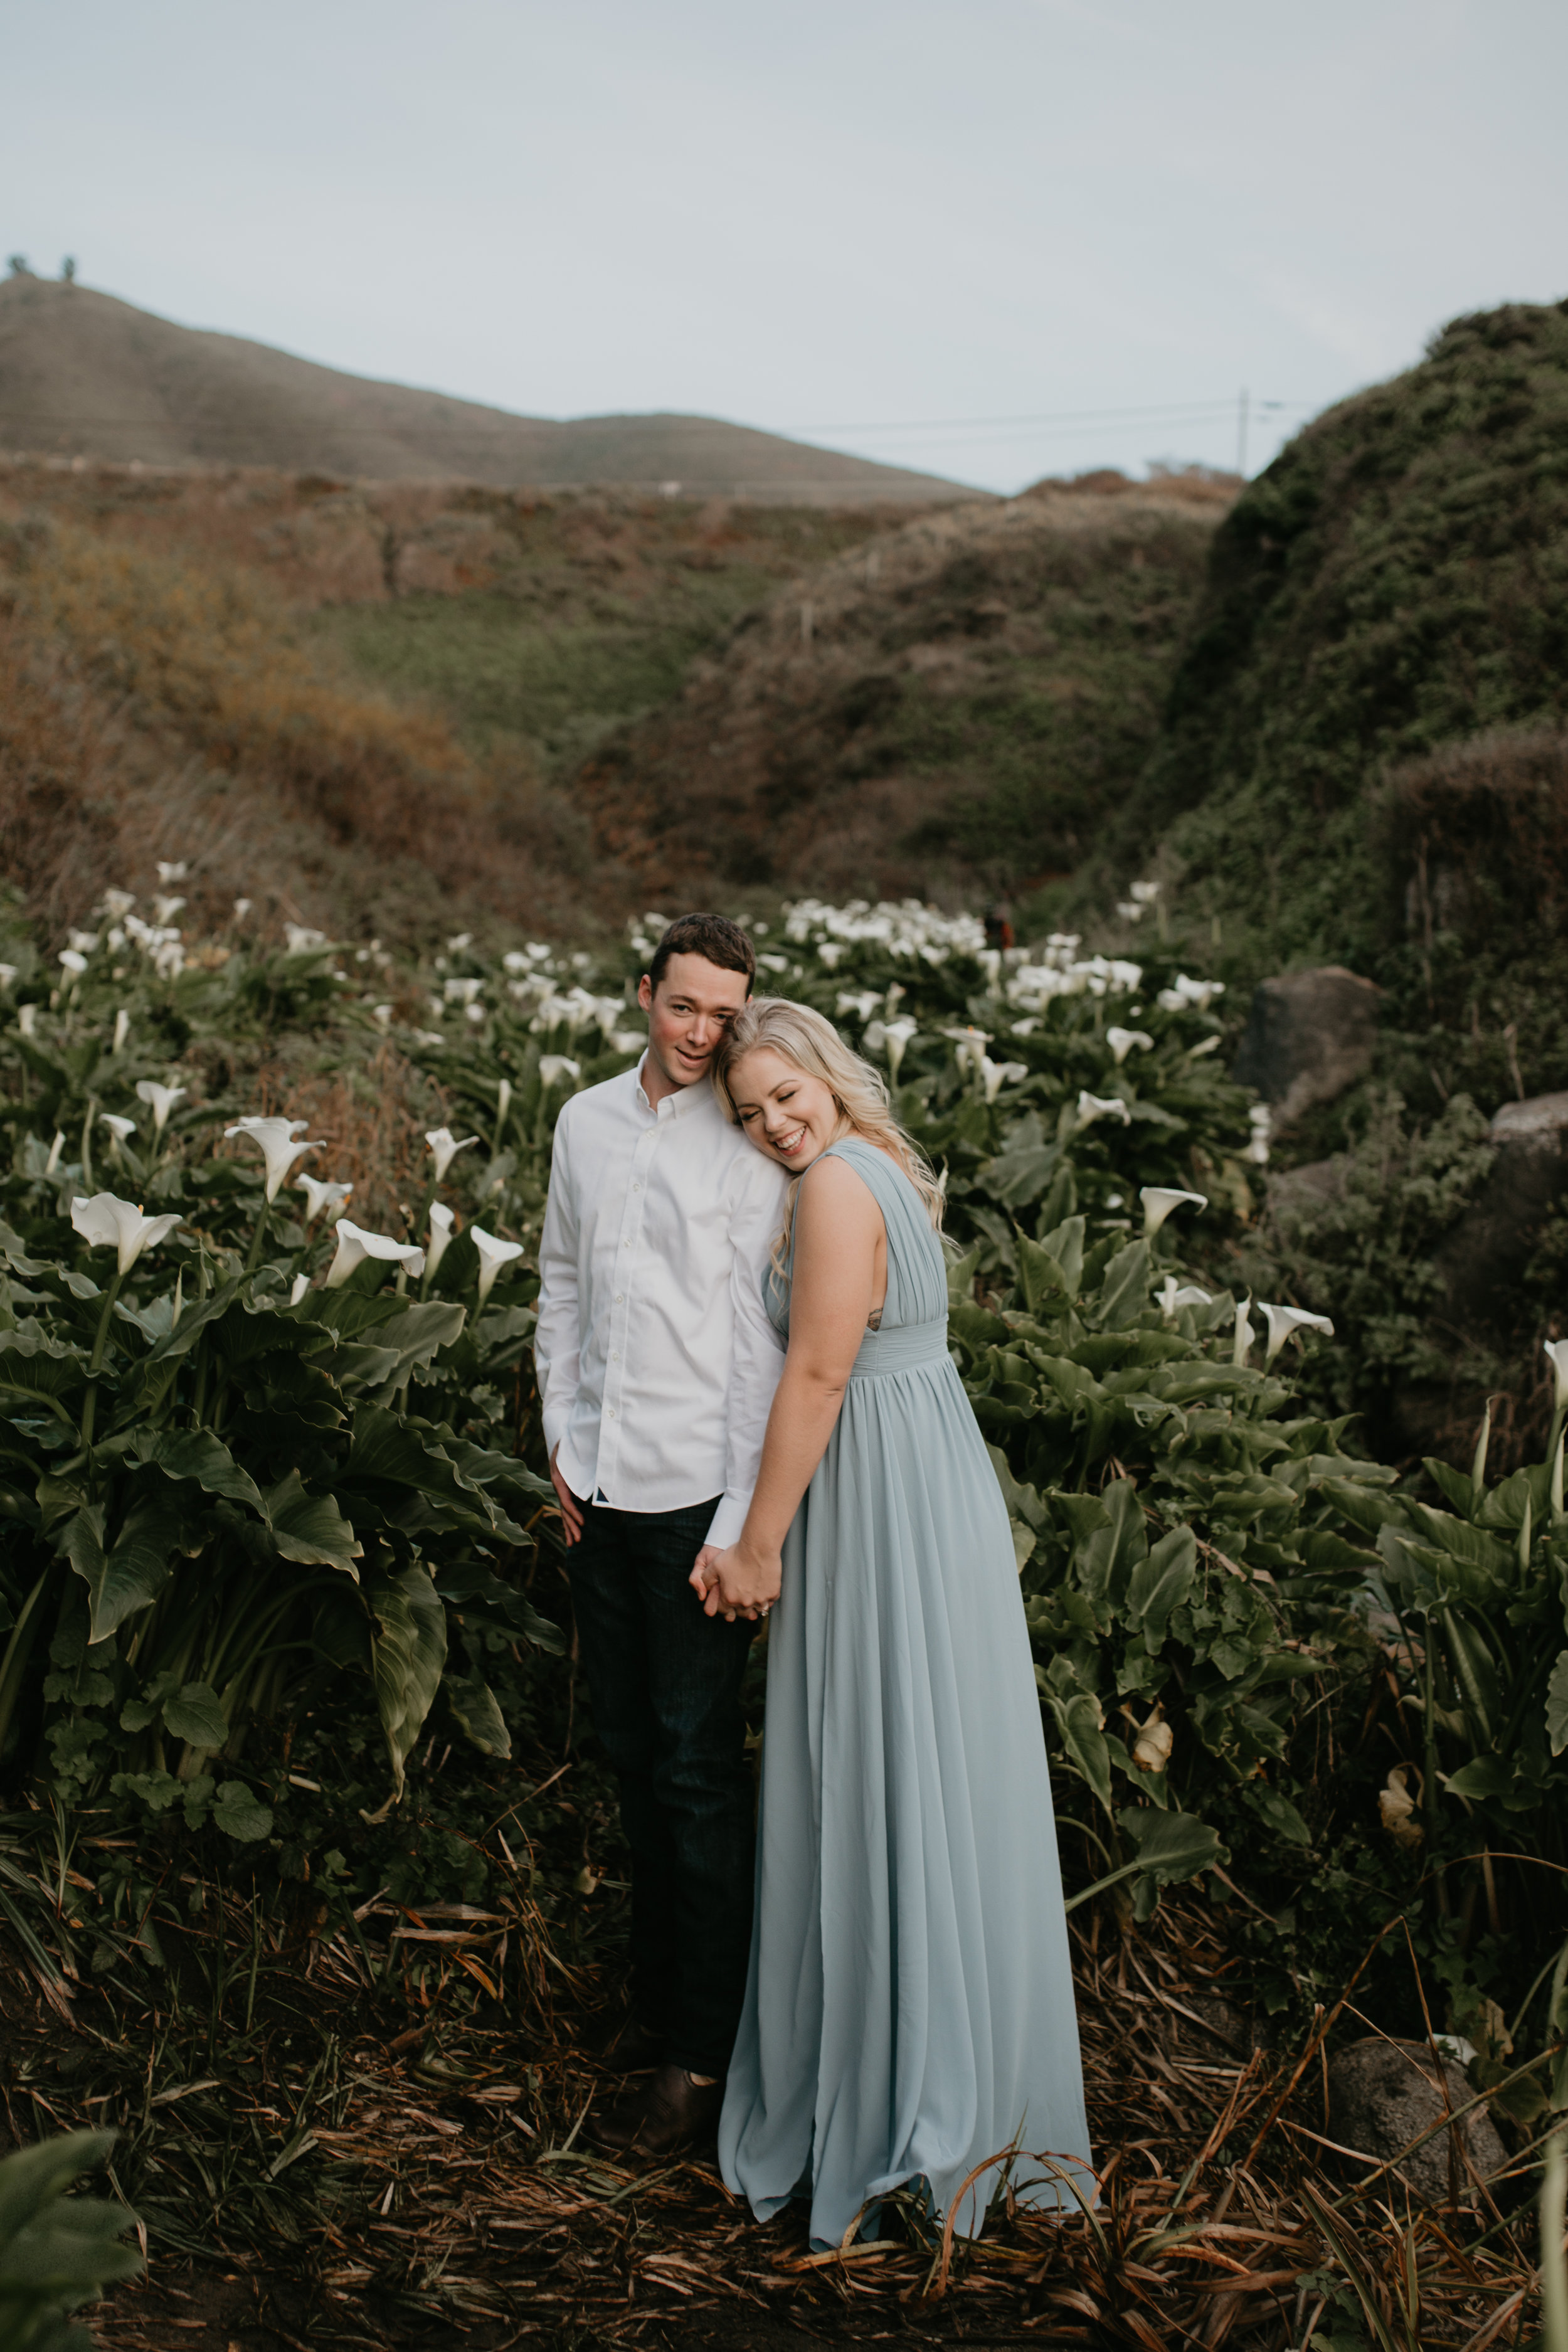 Nicole-Daacke-Photography-big-sur-garrapatta-state-park-adventurous-engagement-session-bixy-bridge-elopement-big-sur-wedding-photographer-monterey-elopement-photographer-california-golden-sunset-coast-photos-41.jpg